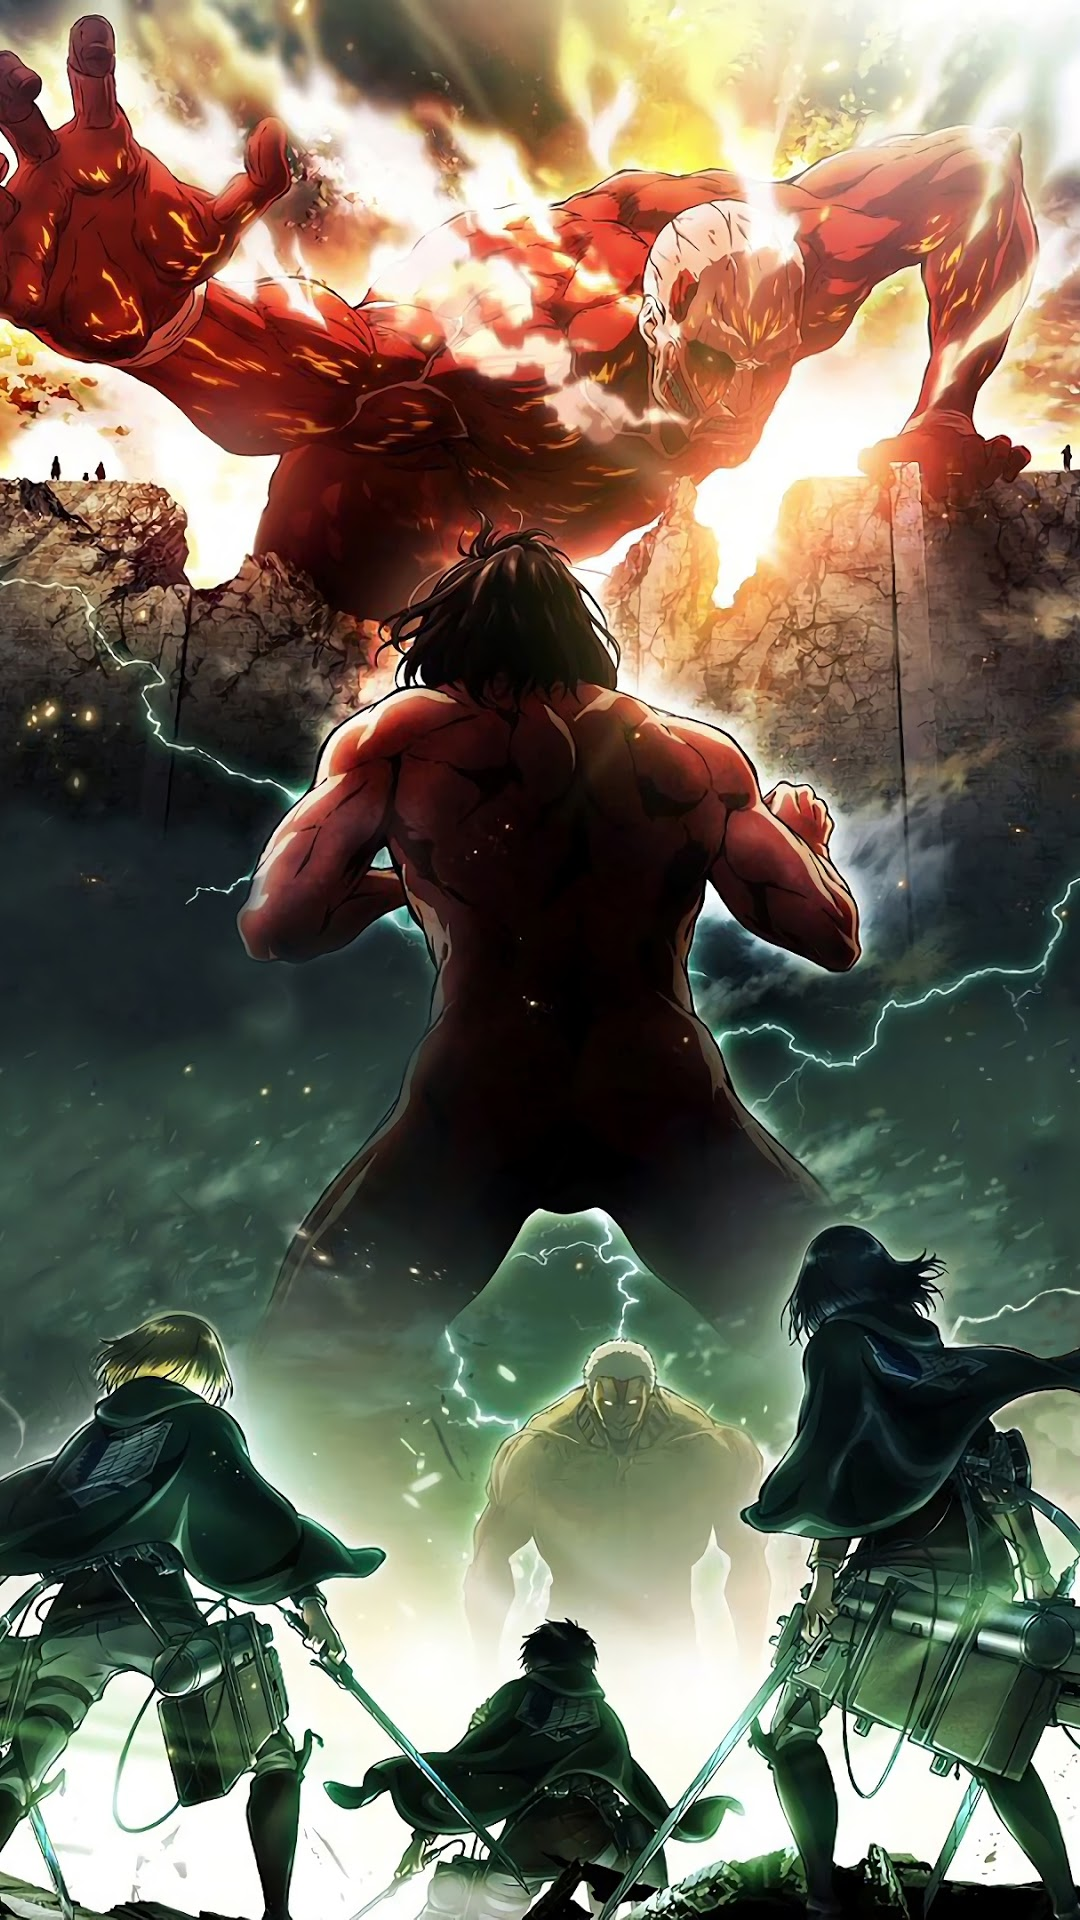 Here is a list of the most beautiful ocean wallpapers online that you can download for free for your computer, phone, or tablet. Iphone Attack On Titan Wallpaper - KoLPaPer - Awesome Free ...